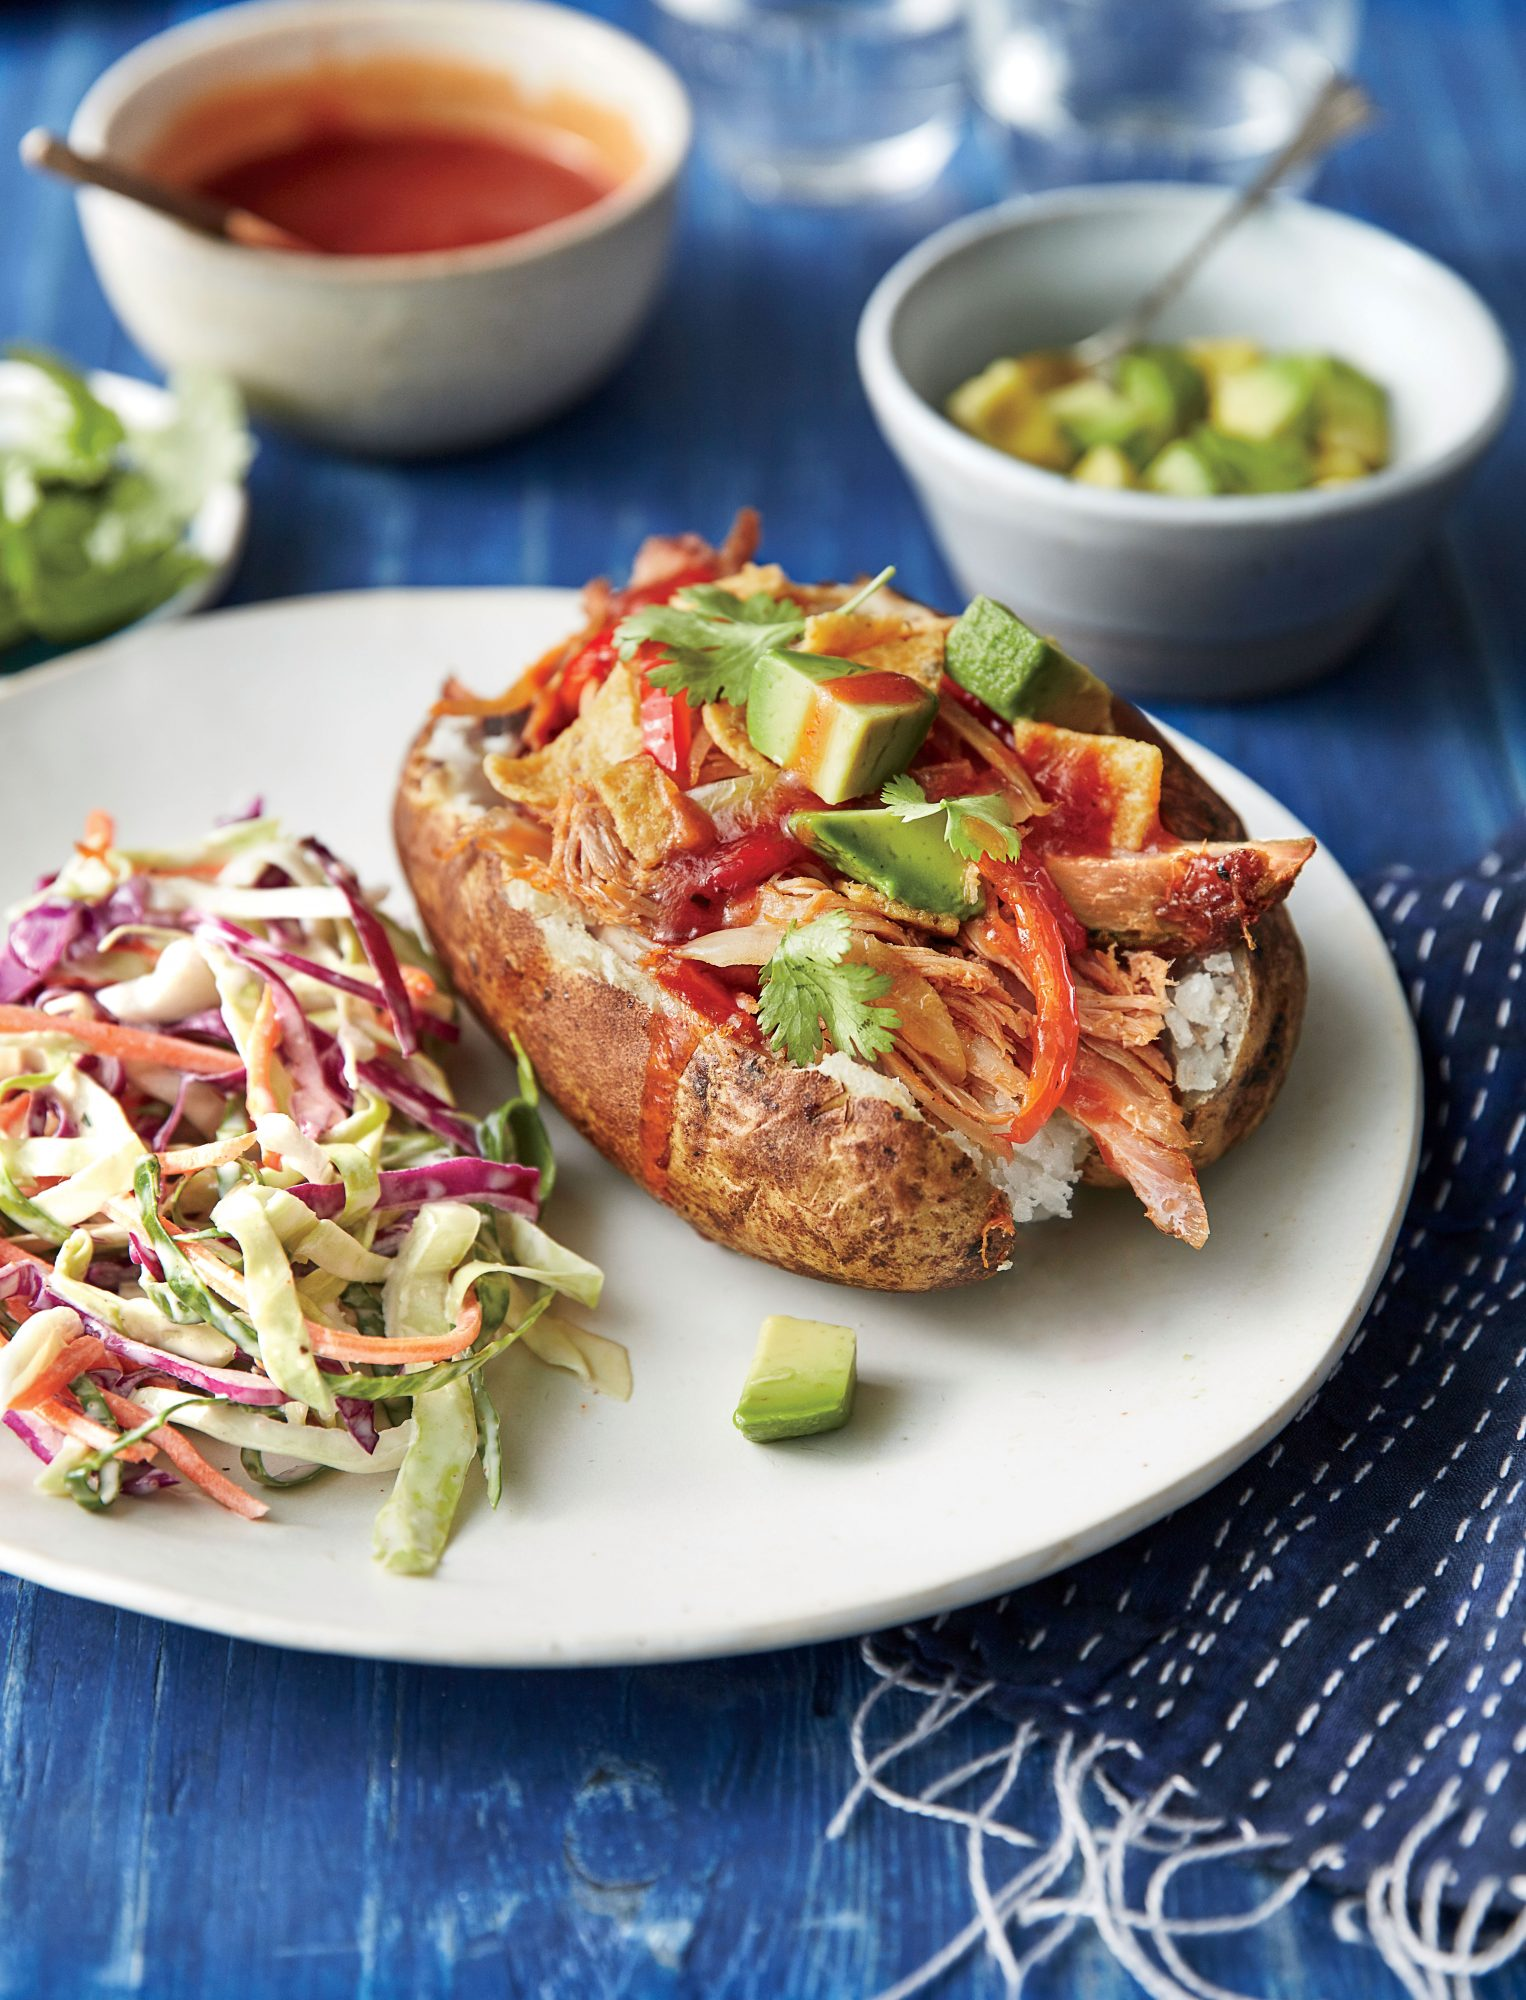 28 Pulled Pork Recipes Dinner Ideas For Pulled Pork Southern Living